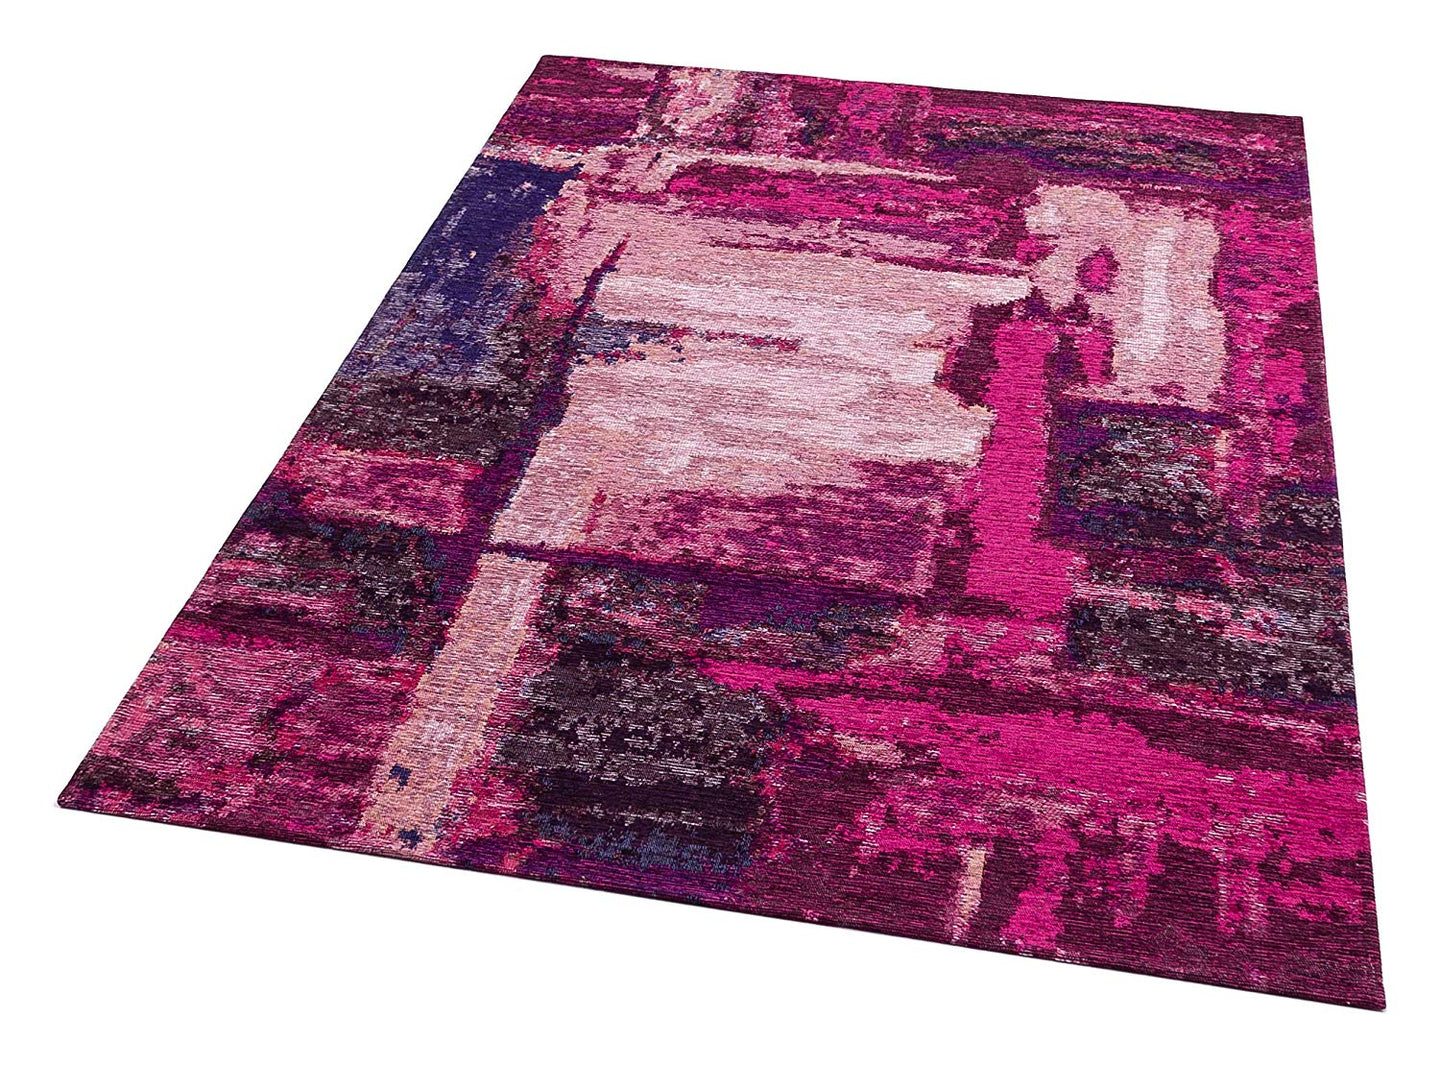 [Non Shedding Lightweight and Durable Rugs]-lilac pink red vibrant energetic abstract contemporary modern patterns unique designer superthin thin rug and carpet living room bedroom kids room kitchen entrance light pink dust free zero pile